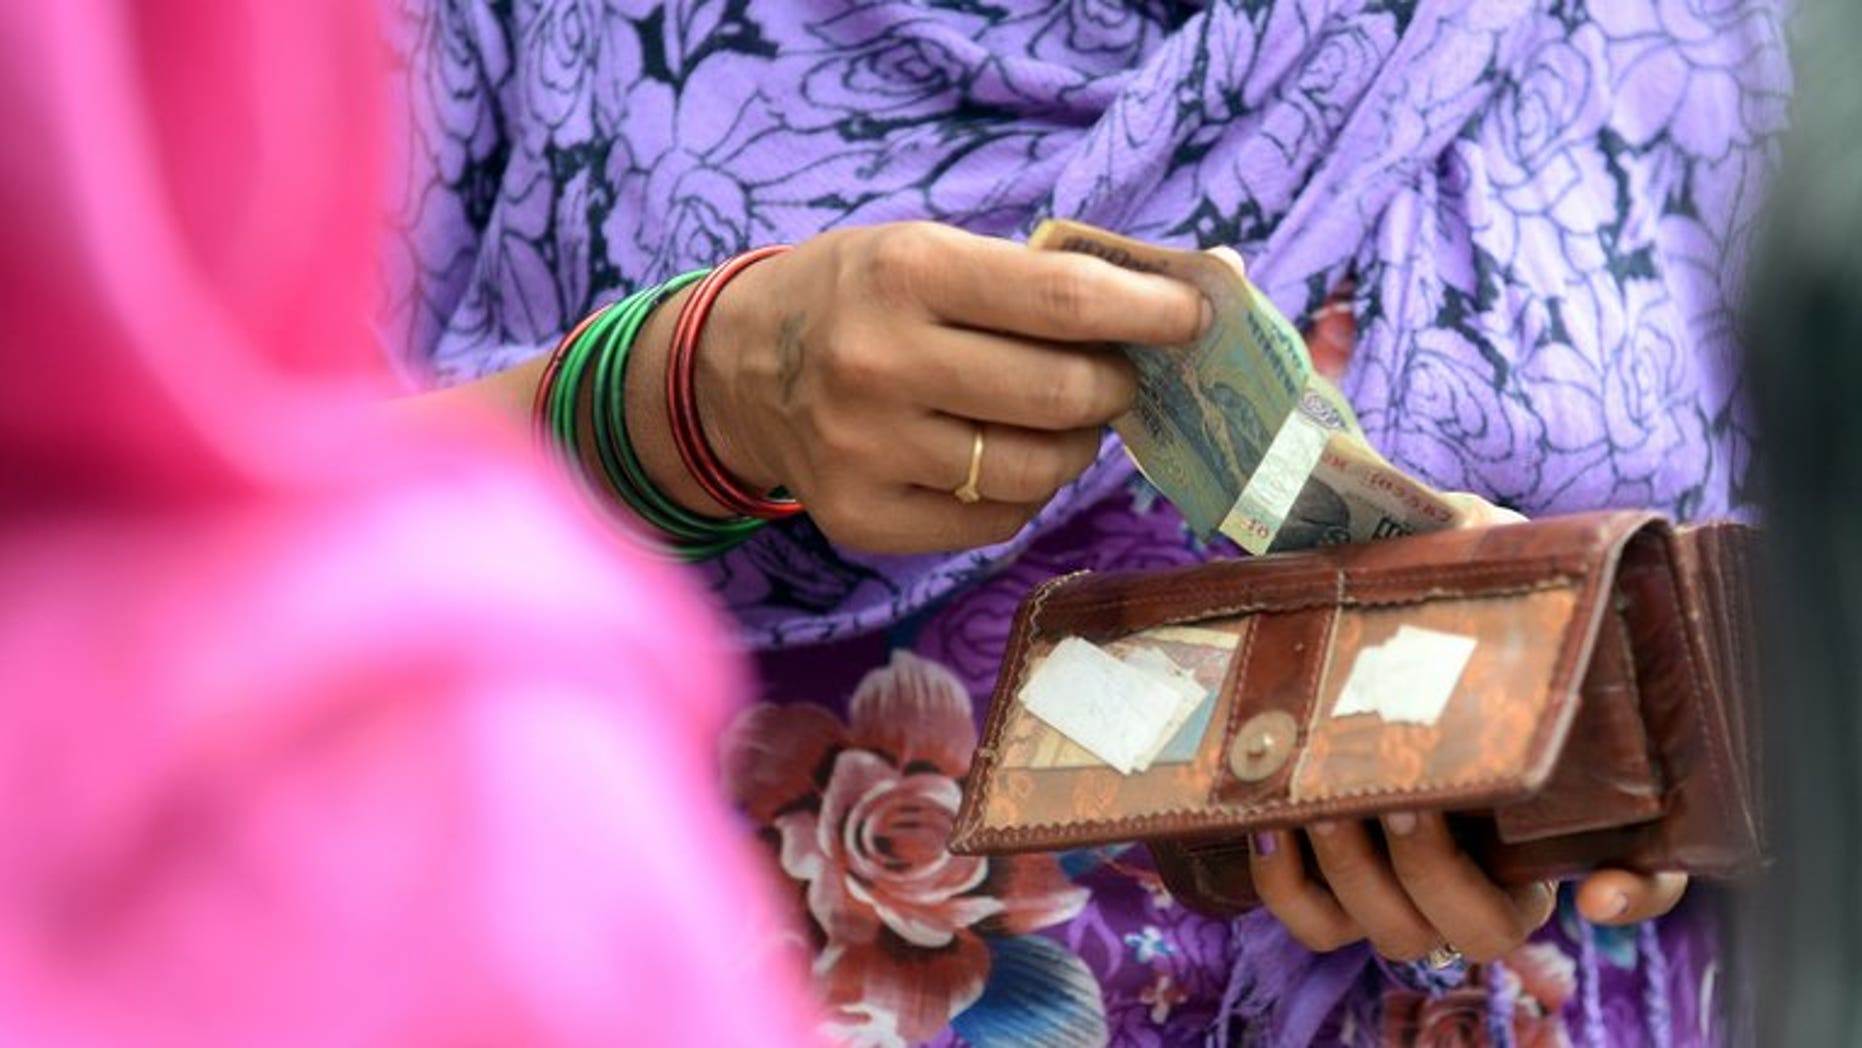 An Indian woman counts rupees to pay a vendor at a local market in New Delhi on August 17, 2013. India's premier ruled out Saturday any suggestion the country could suffer a repeat of its 1991 balance-of-payments crisis as it grapples with a plunging rupee and a huge trade gap.